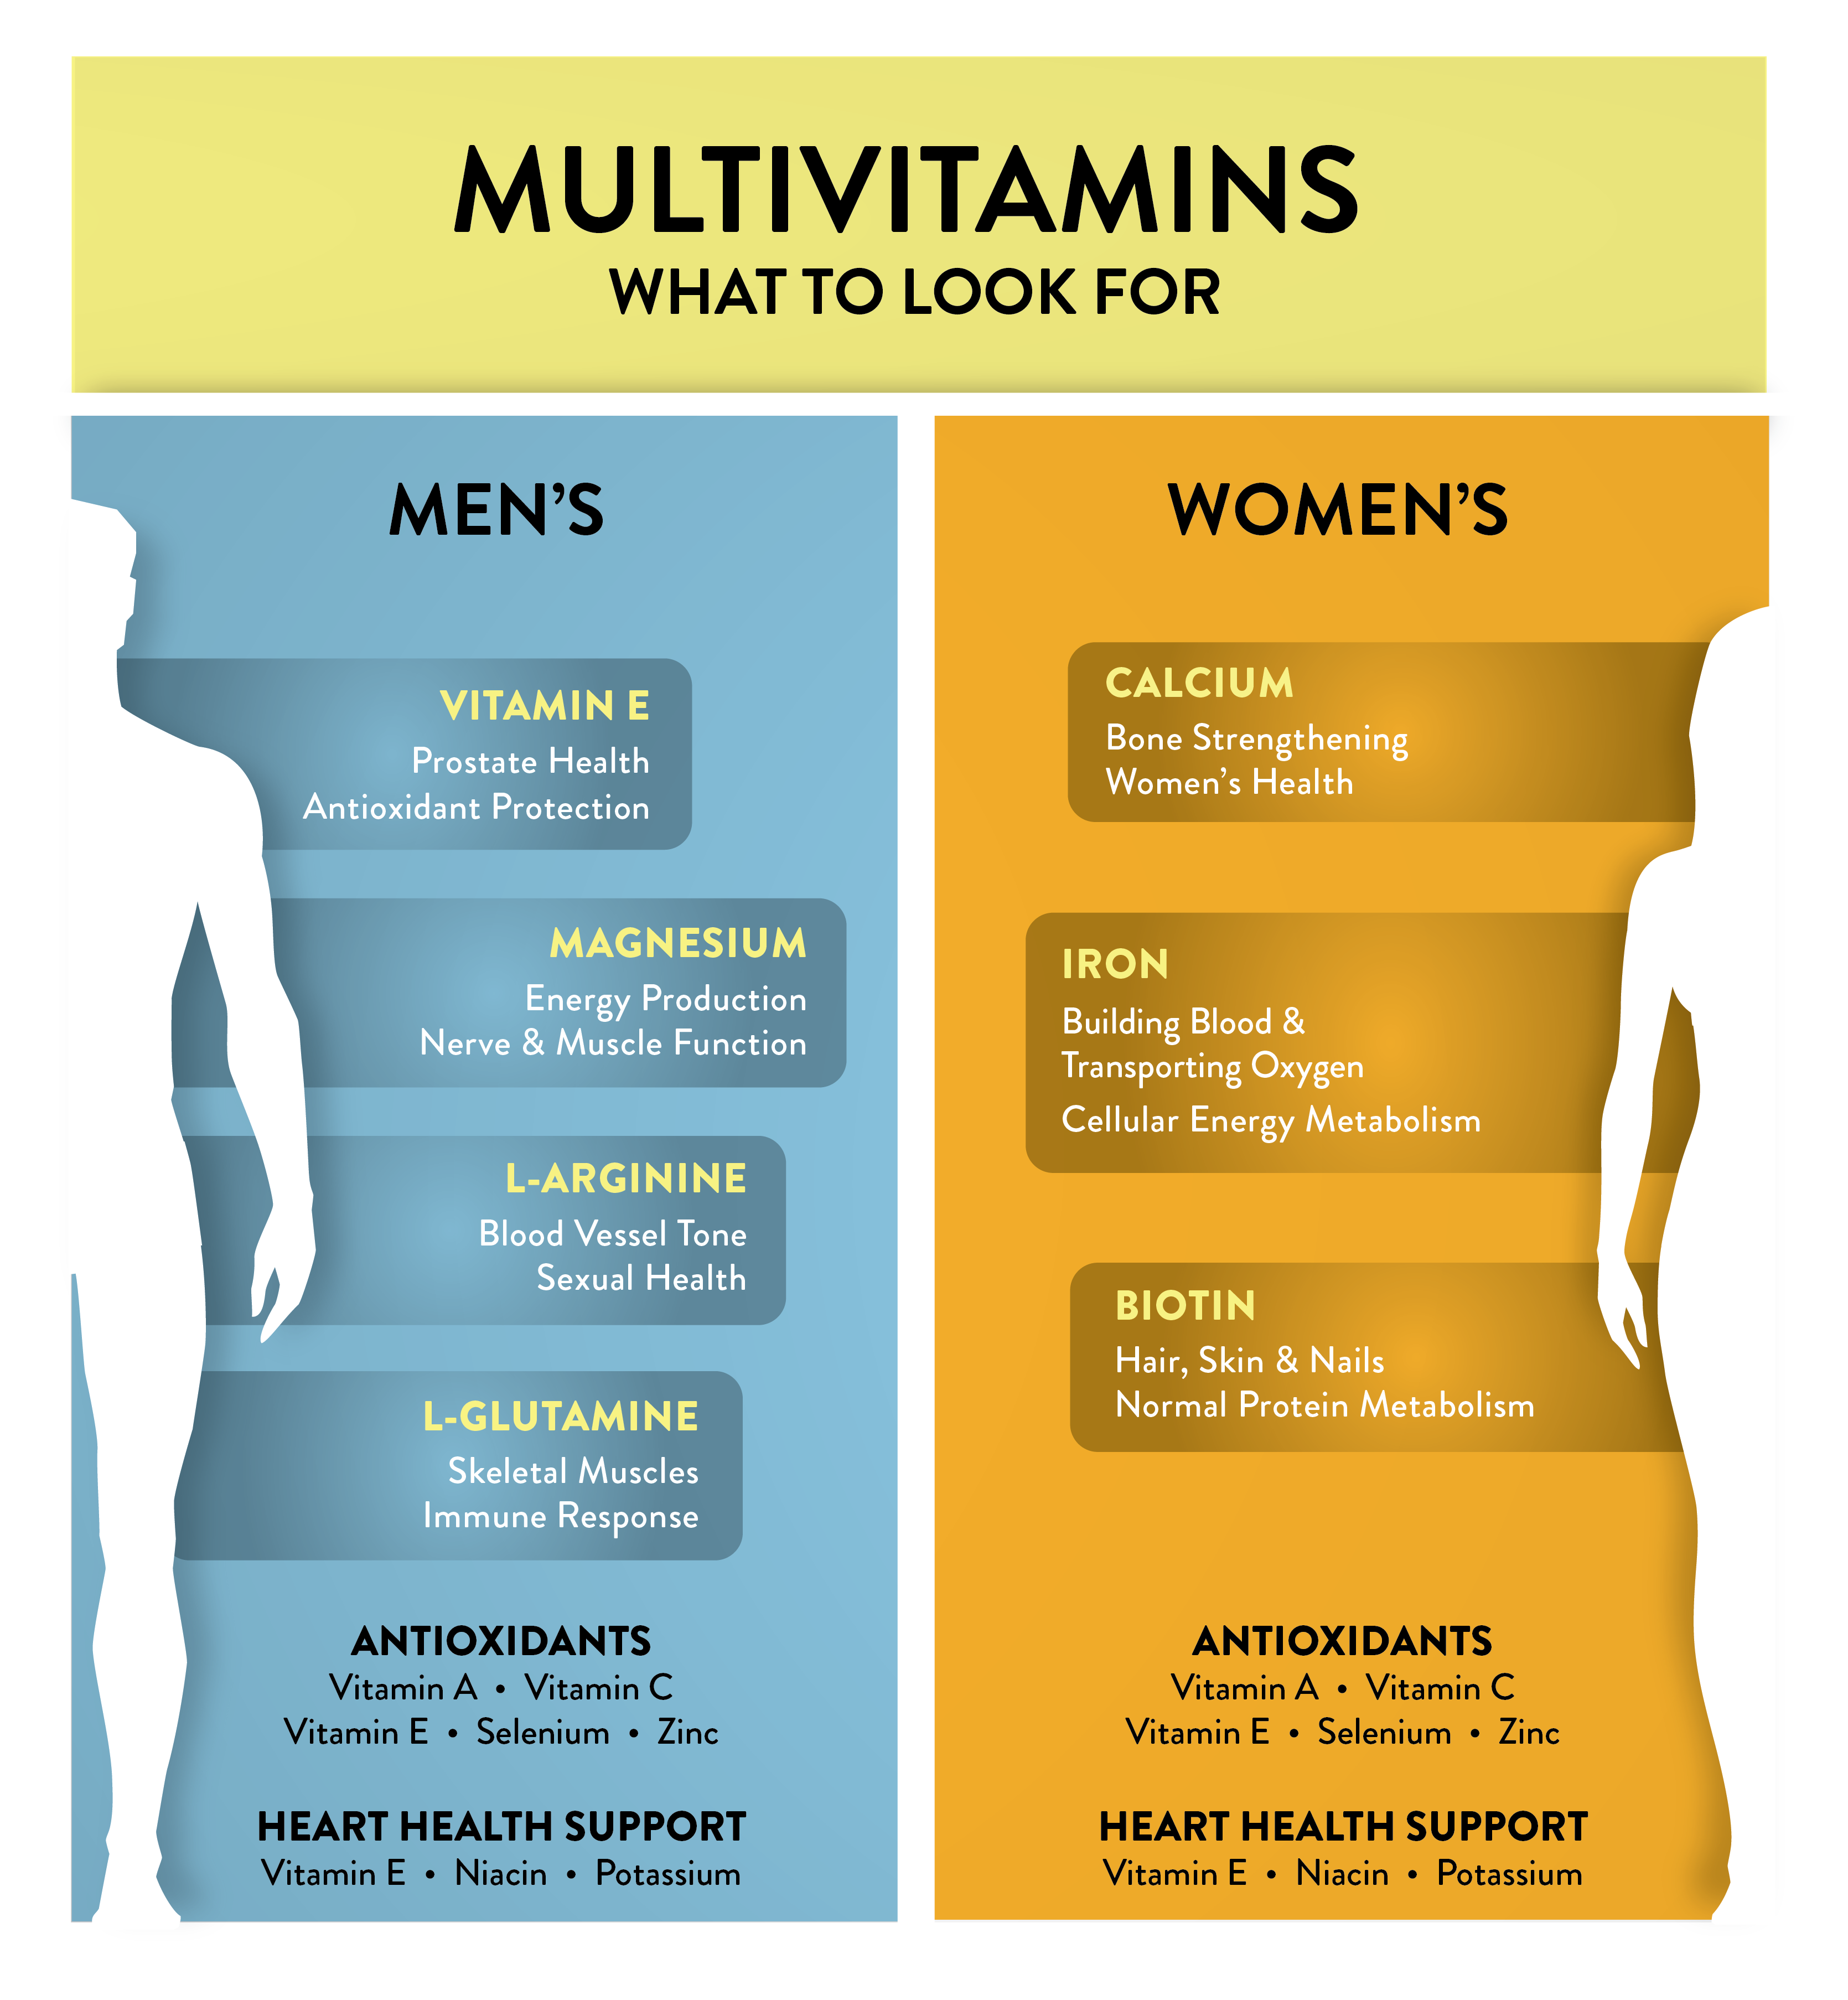 Comparison Chart showing Differences Between Men's vs. Women's Multivitamins